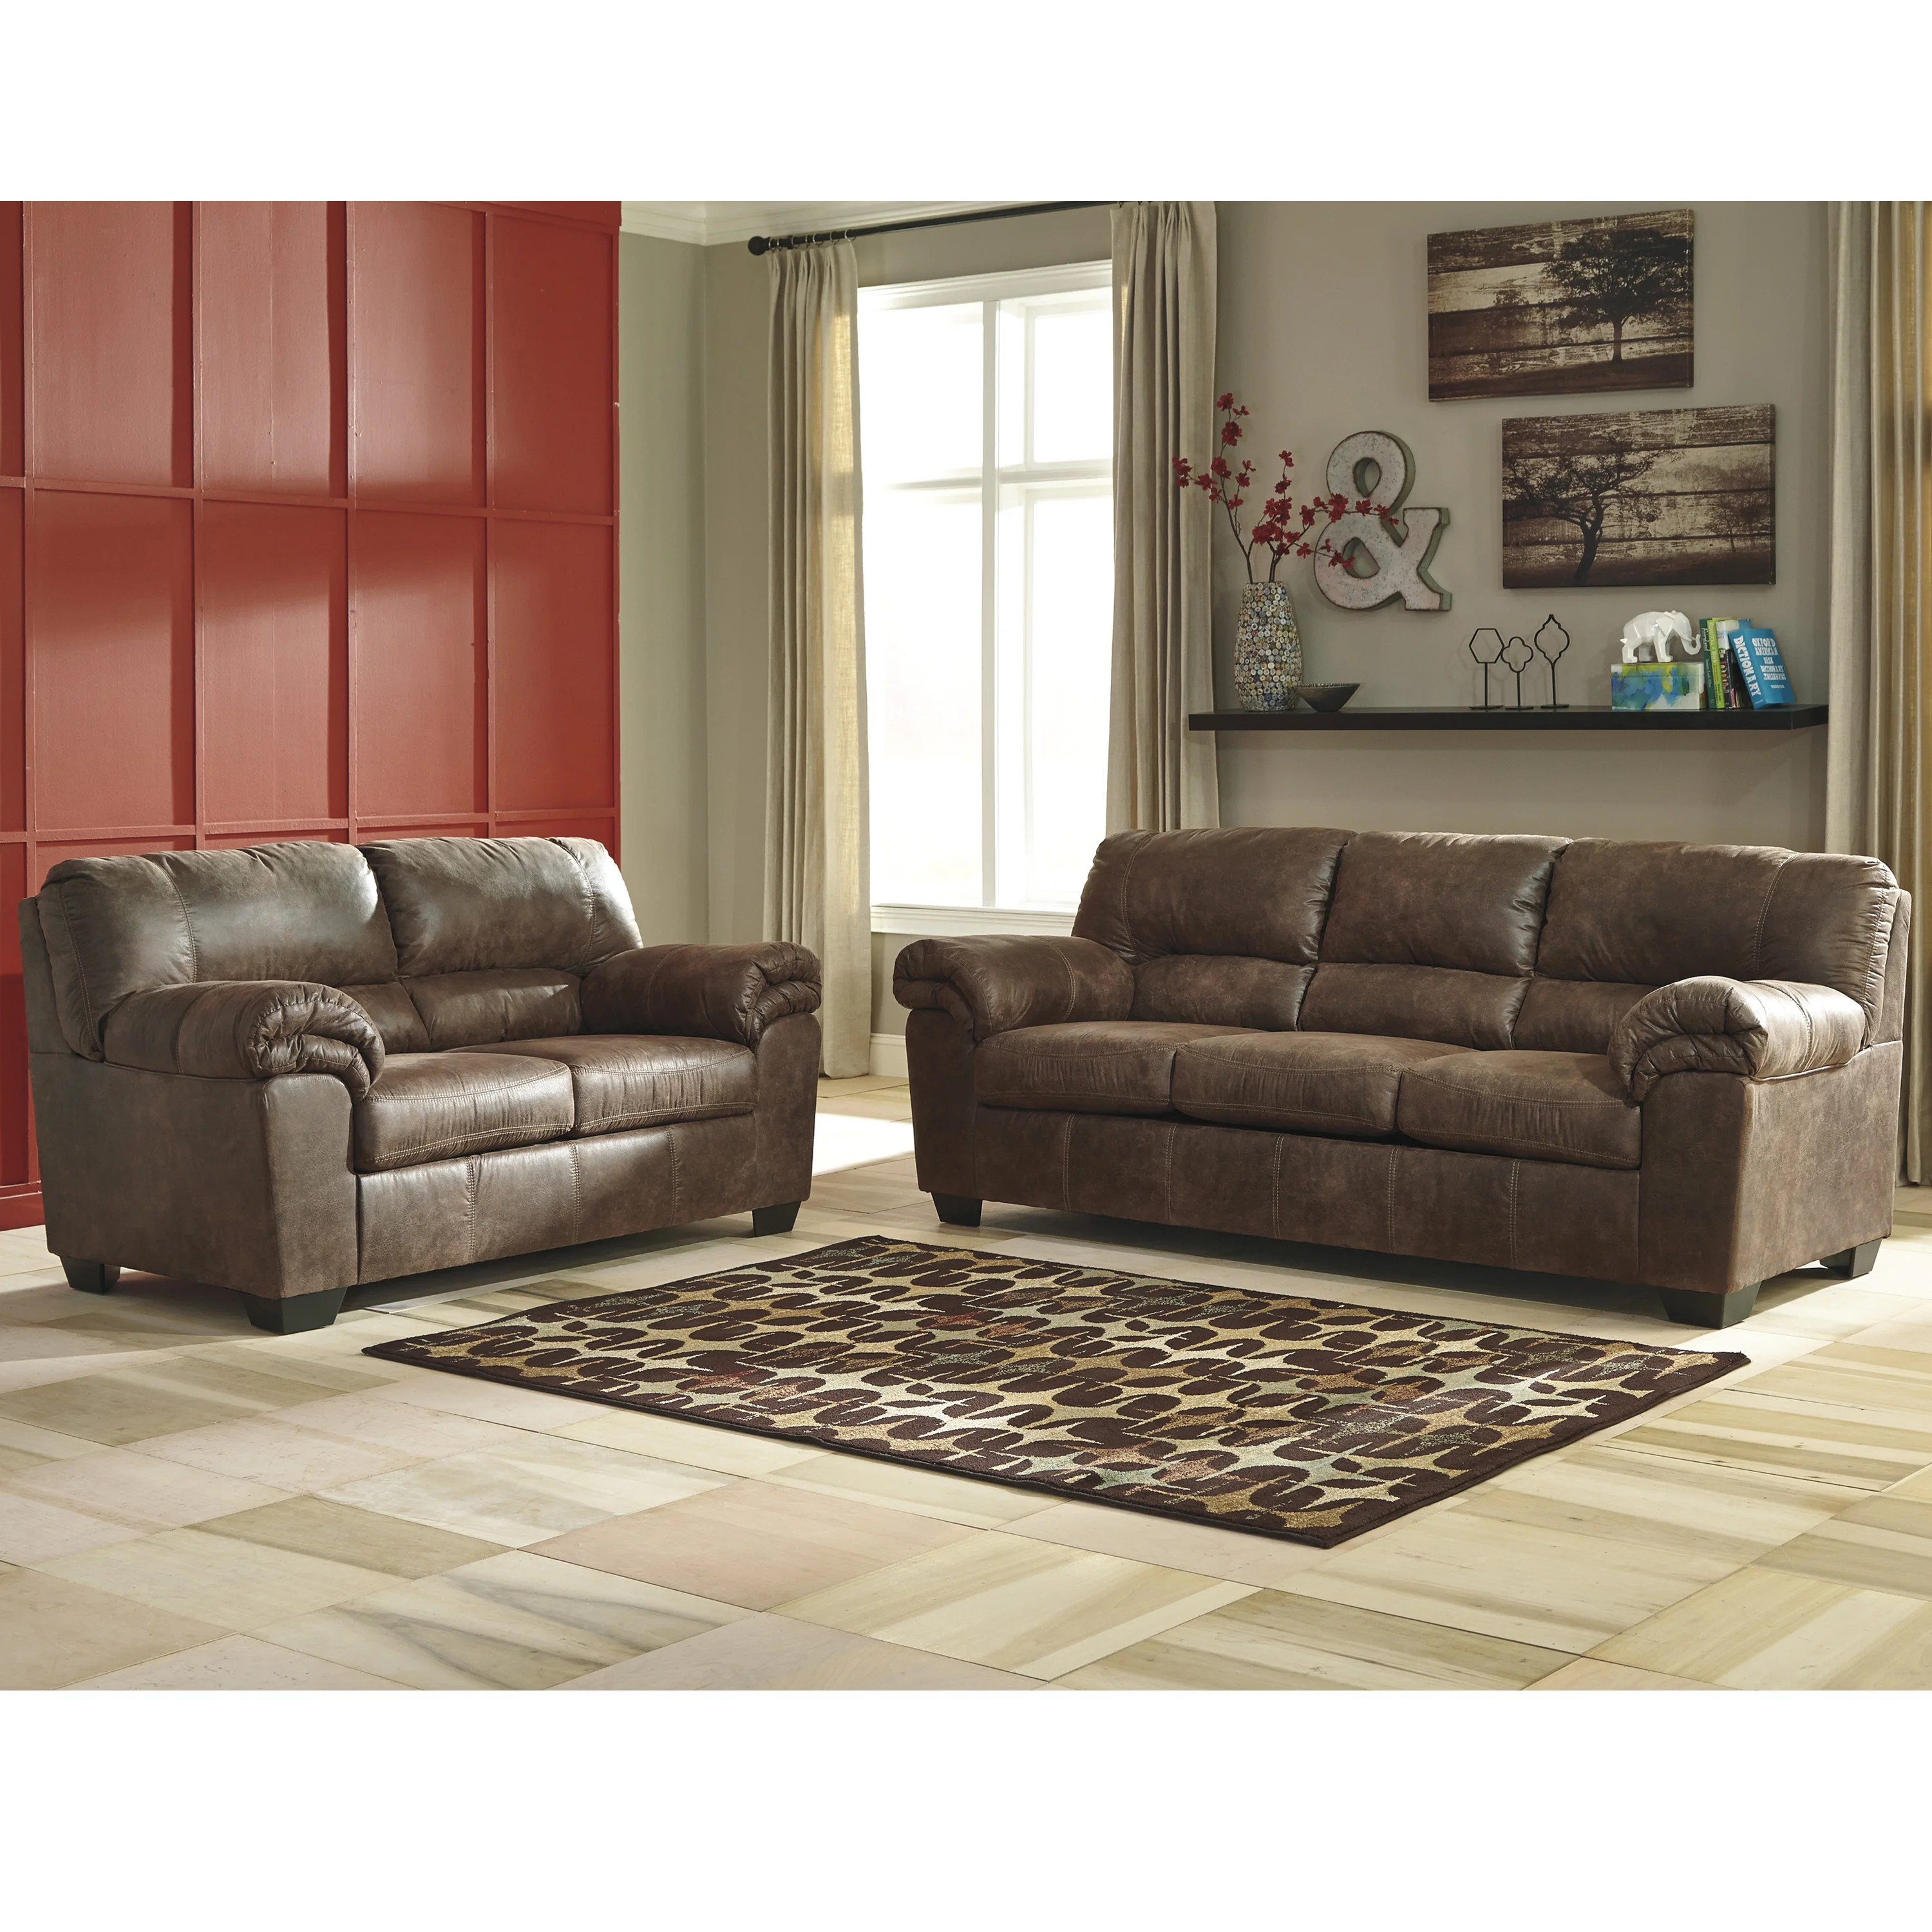 Living Room Furniture Dictionary